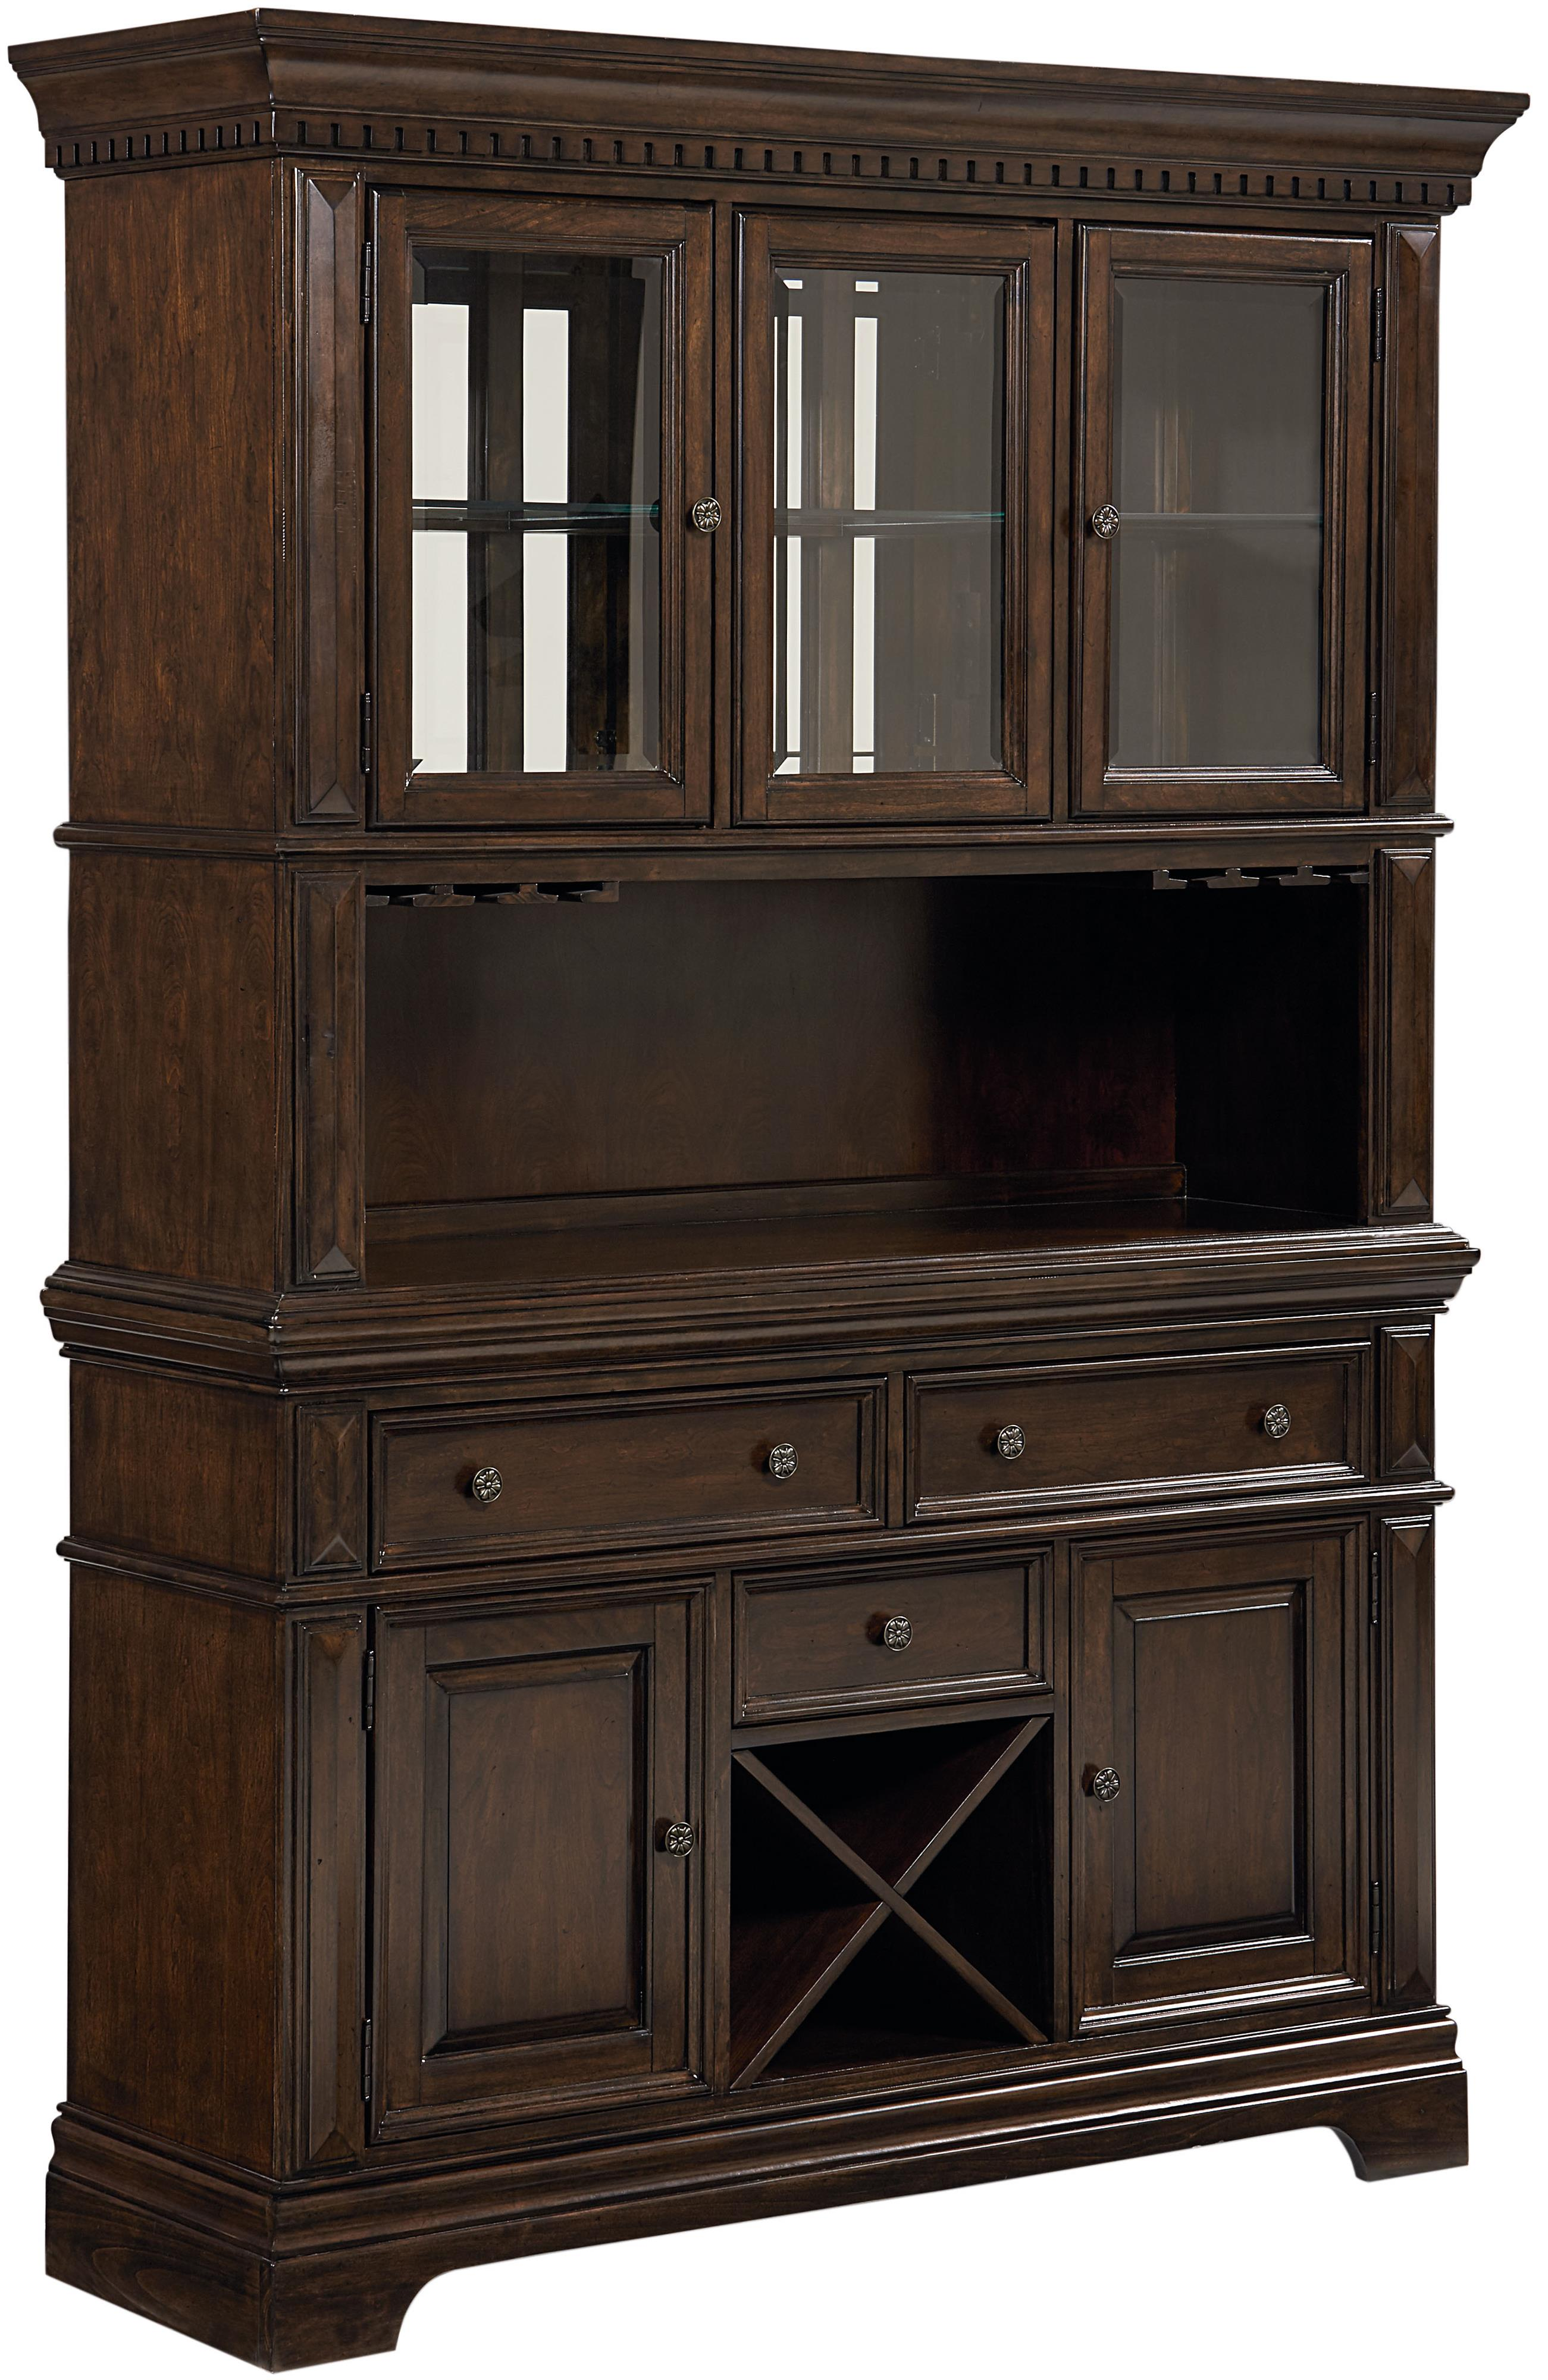 Standard furniture charleston buffet hutch with wine